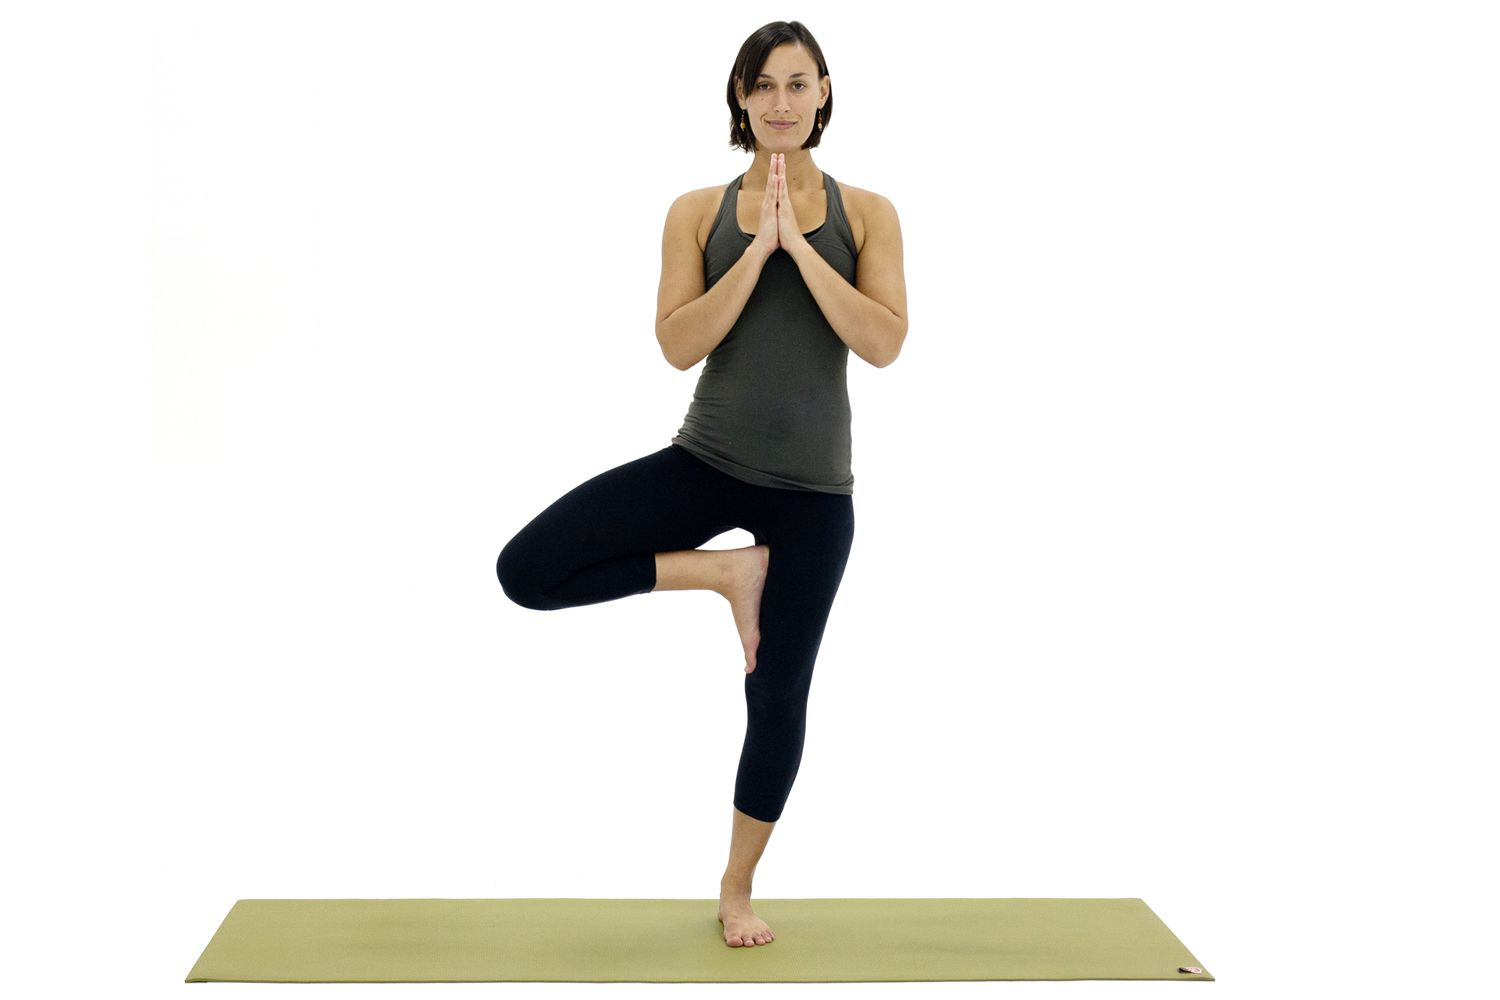 Standing Yoga Poses To Strengthen Core